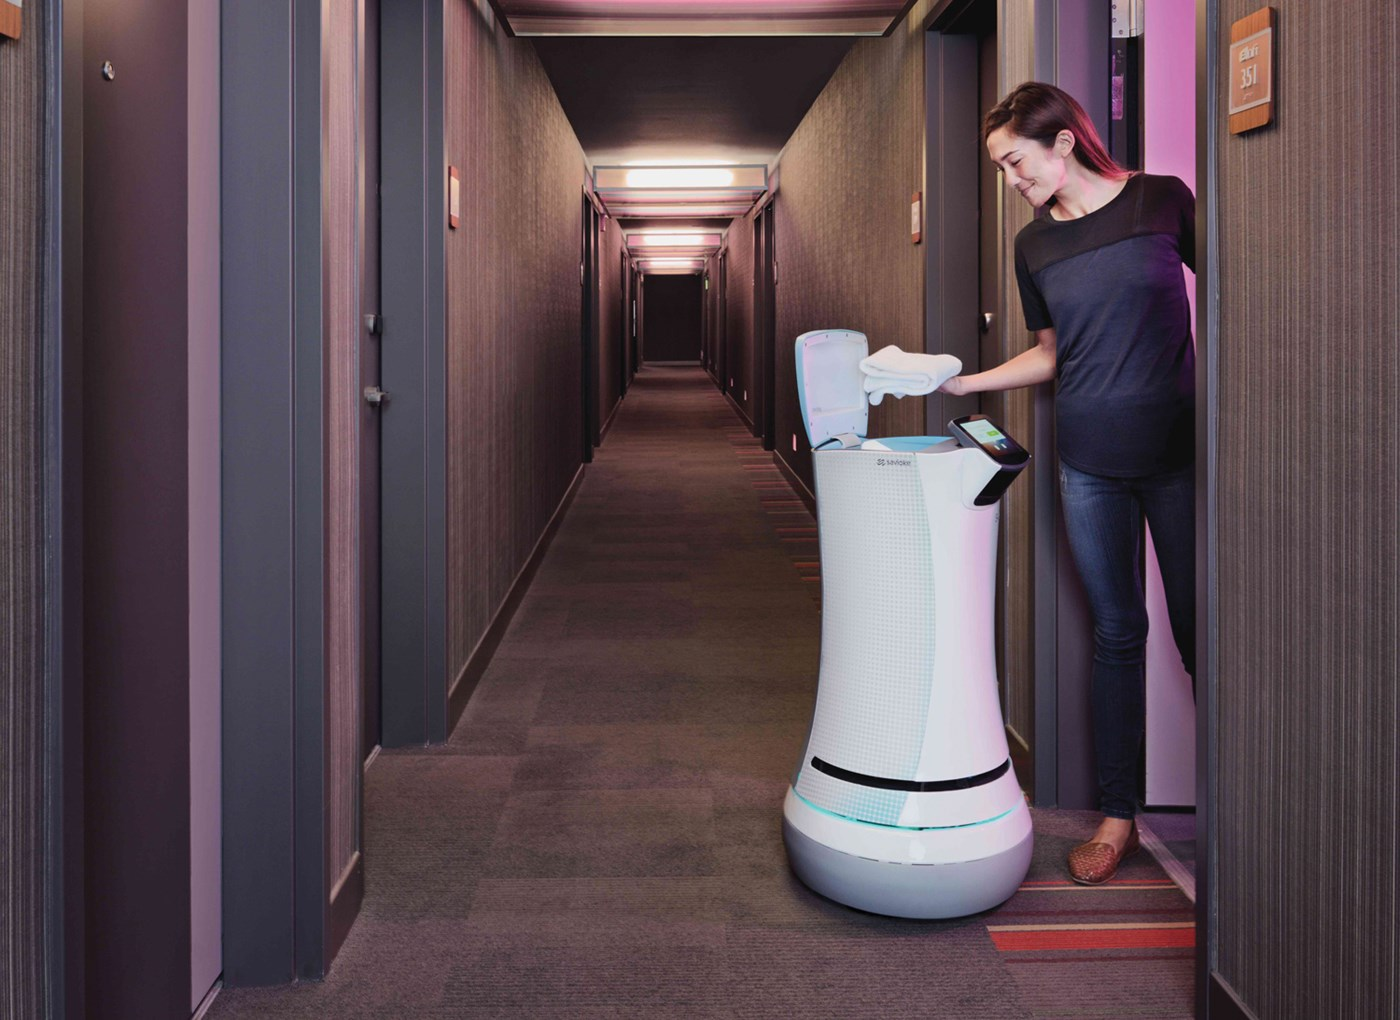 Robot brings room service at a hotel